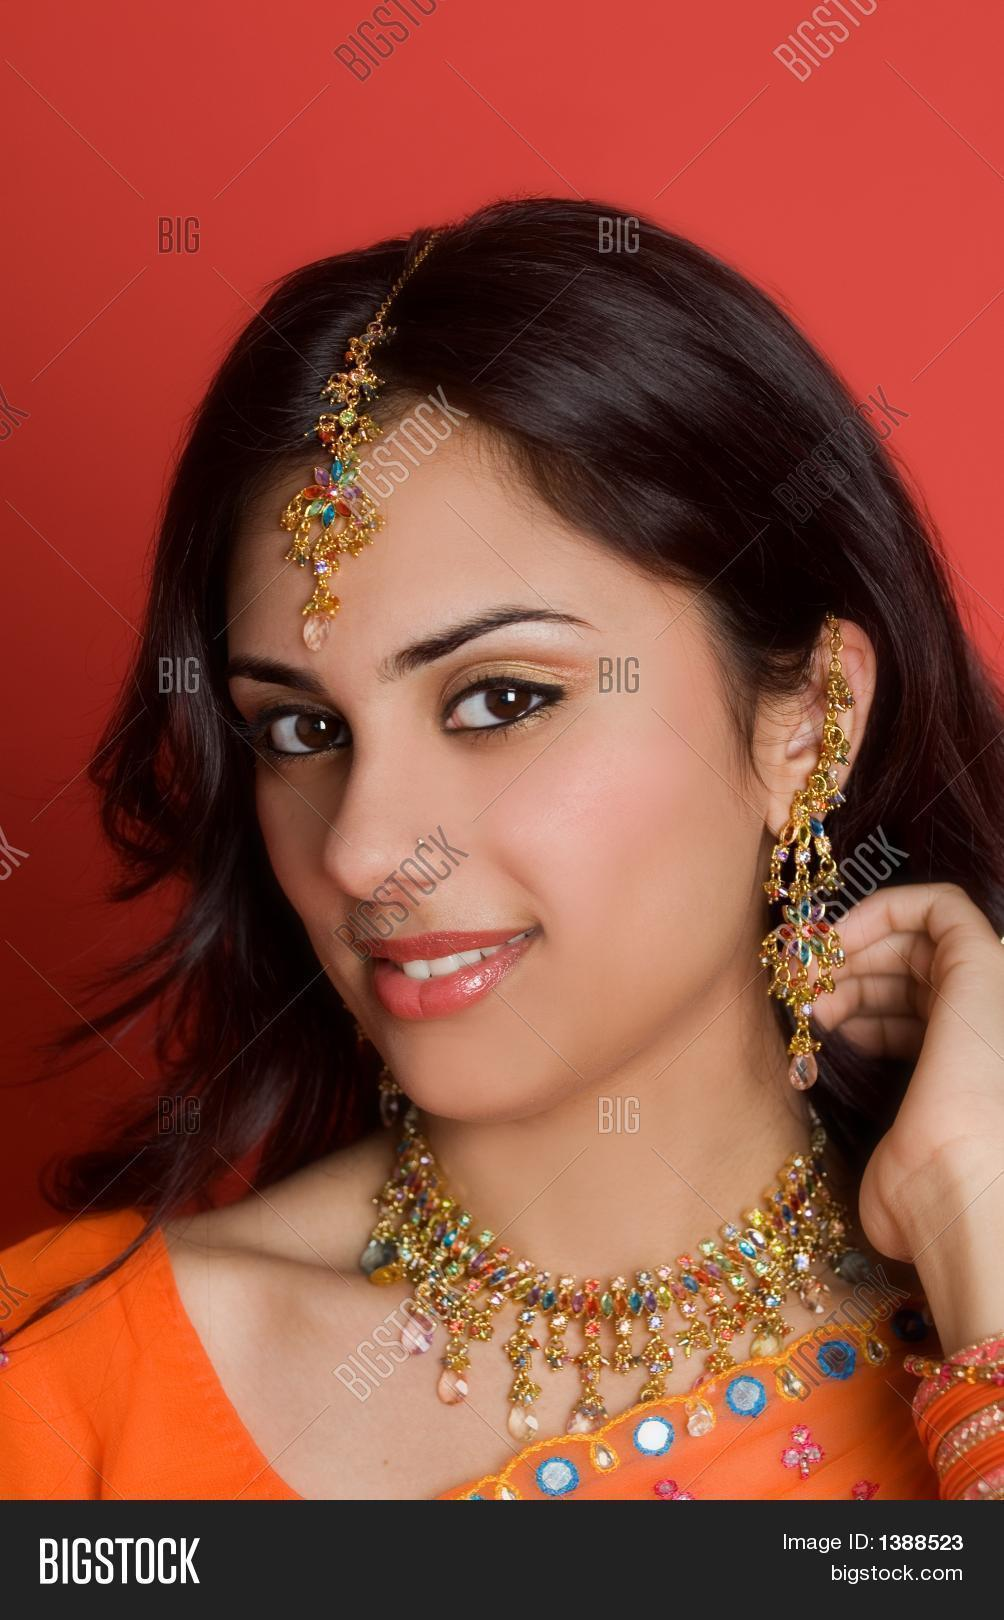 tuckahoe hindu single women Meet thousands of beautiful single women online seeking men for dating, love, marriage in india.